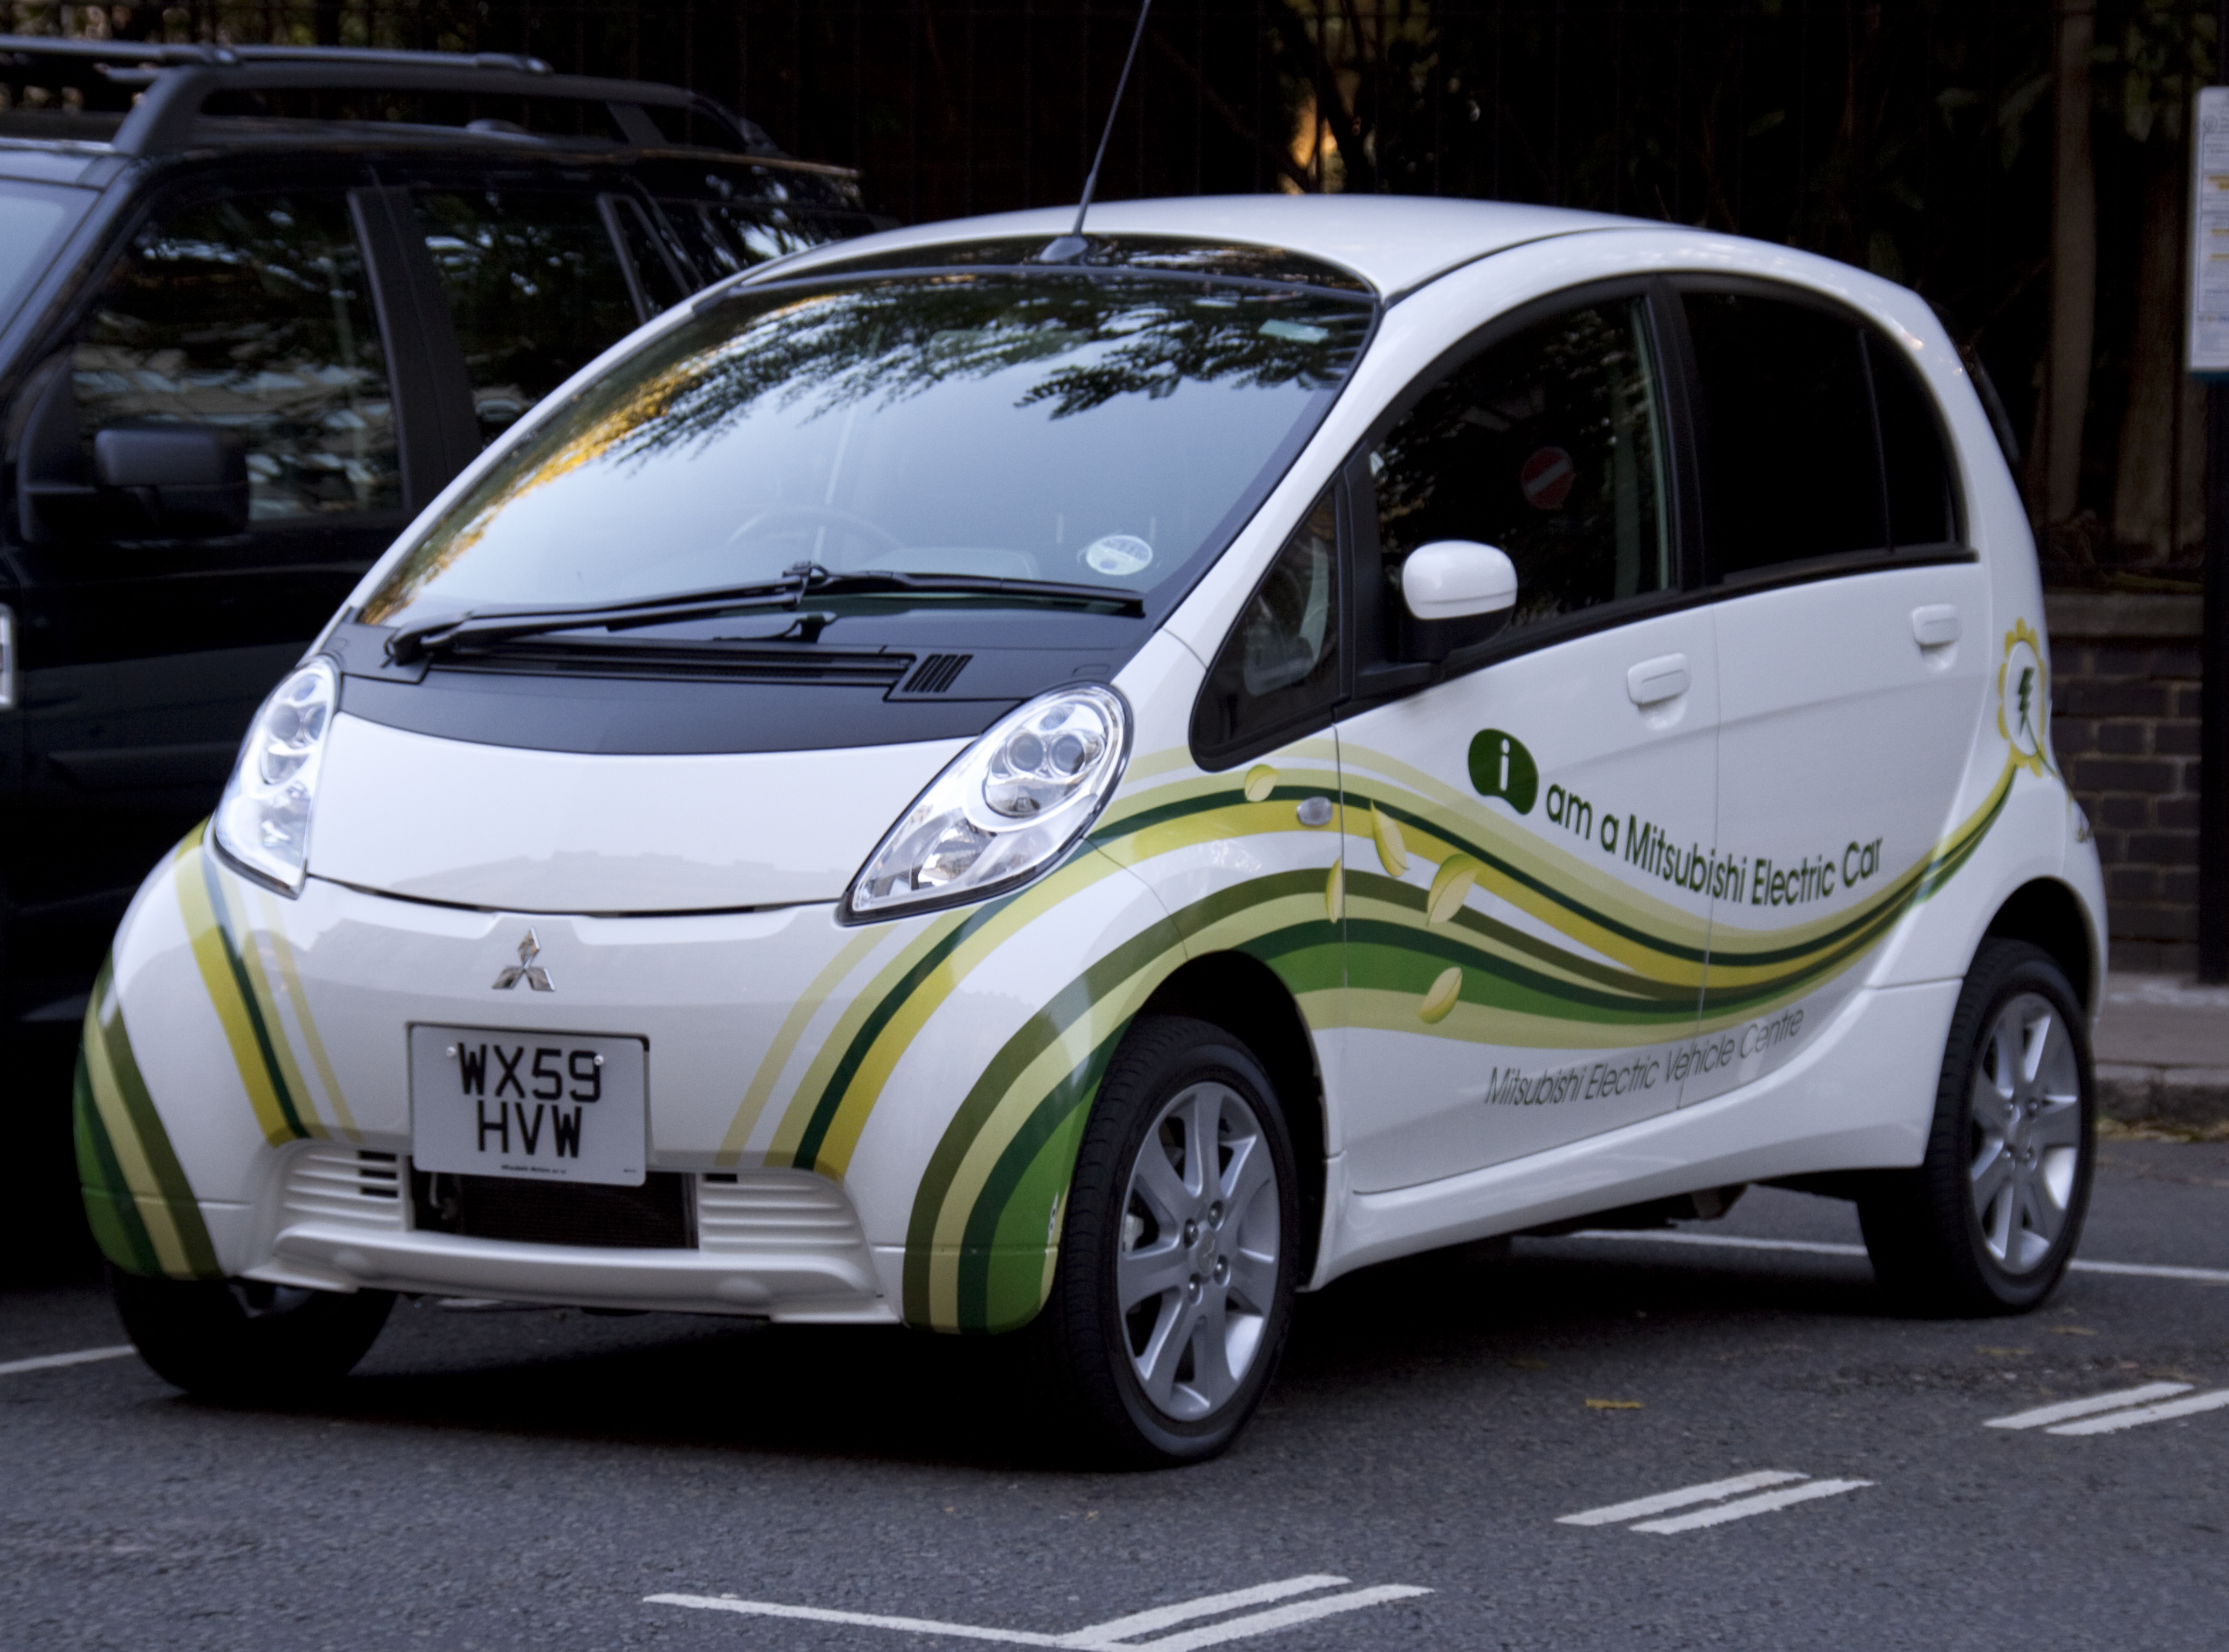 Do Electric Cars Cause More Pollution Than Fossil Fuel